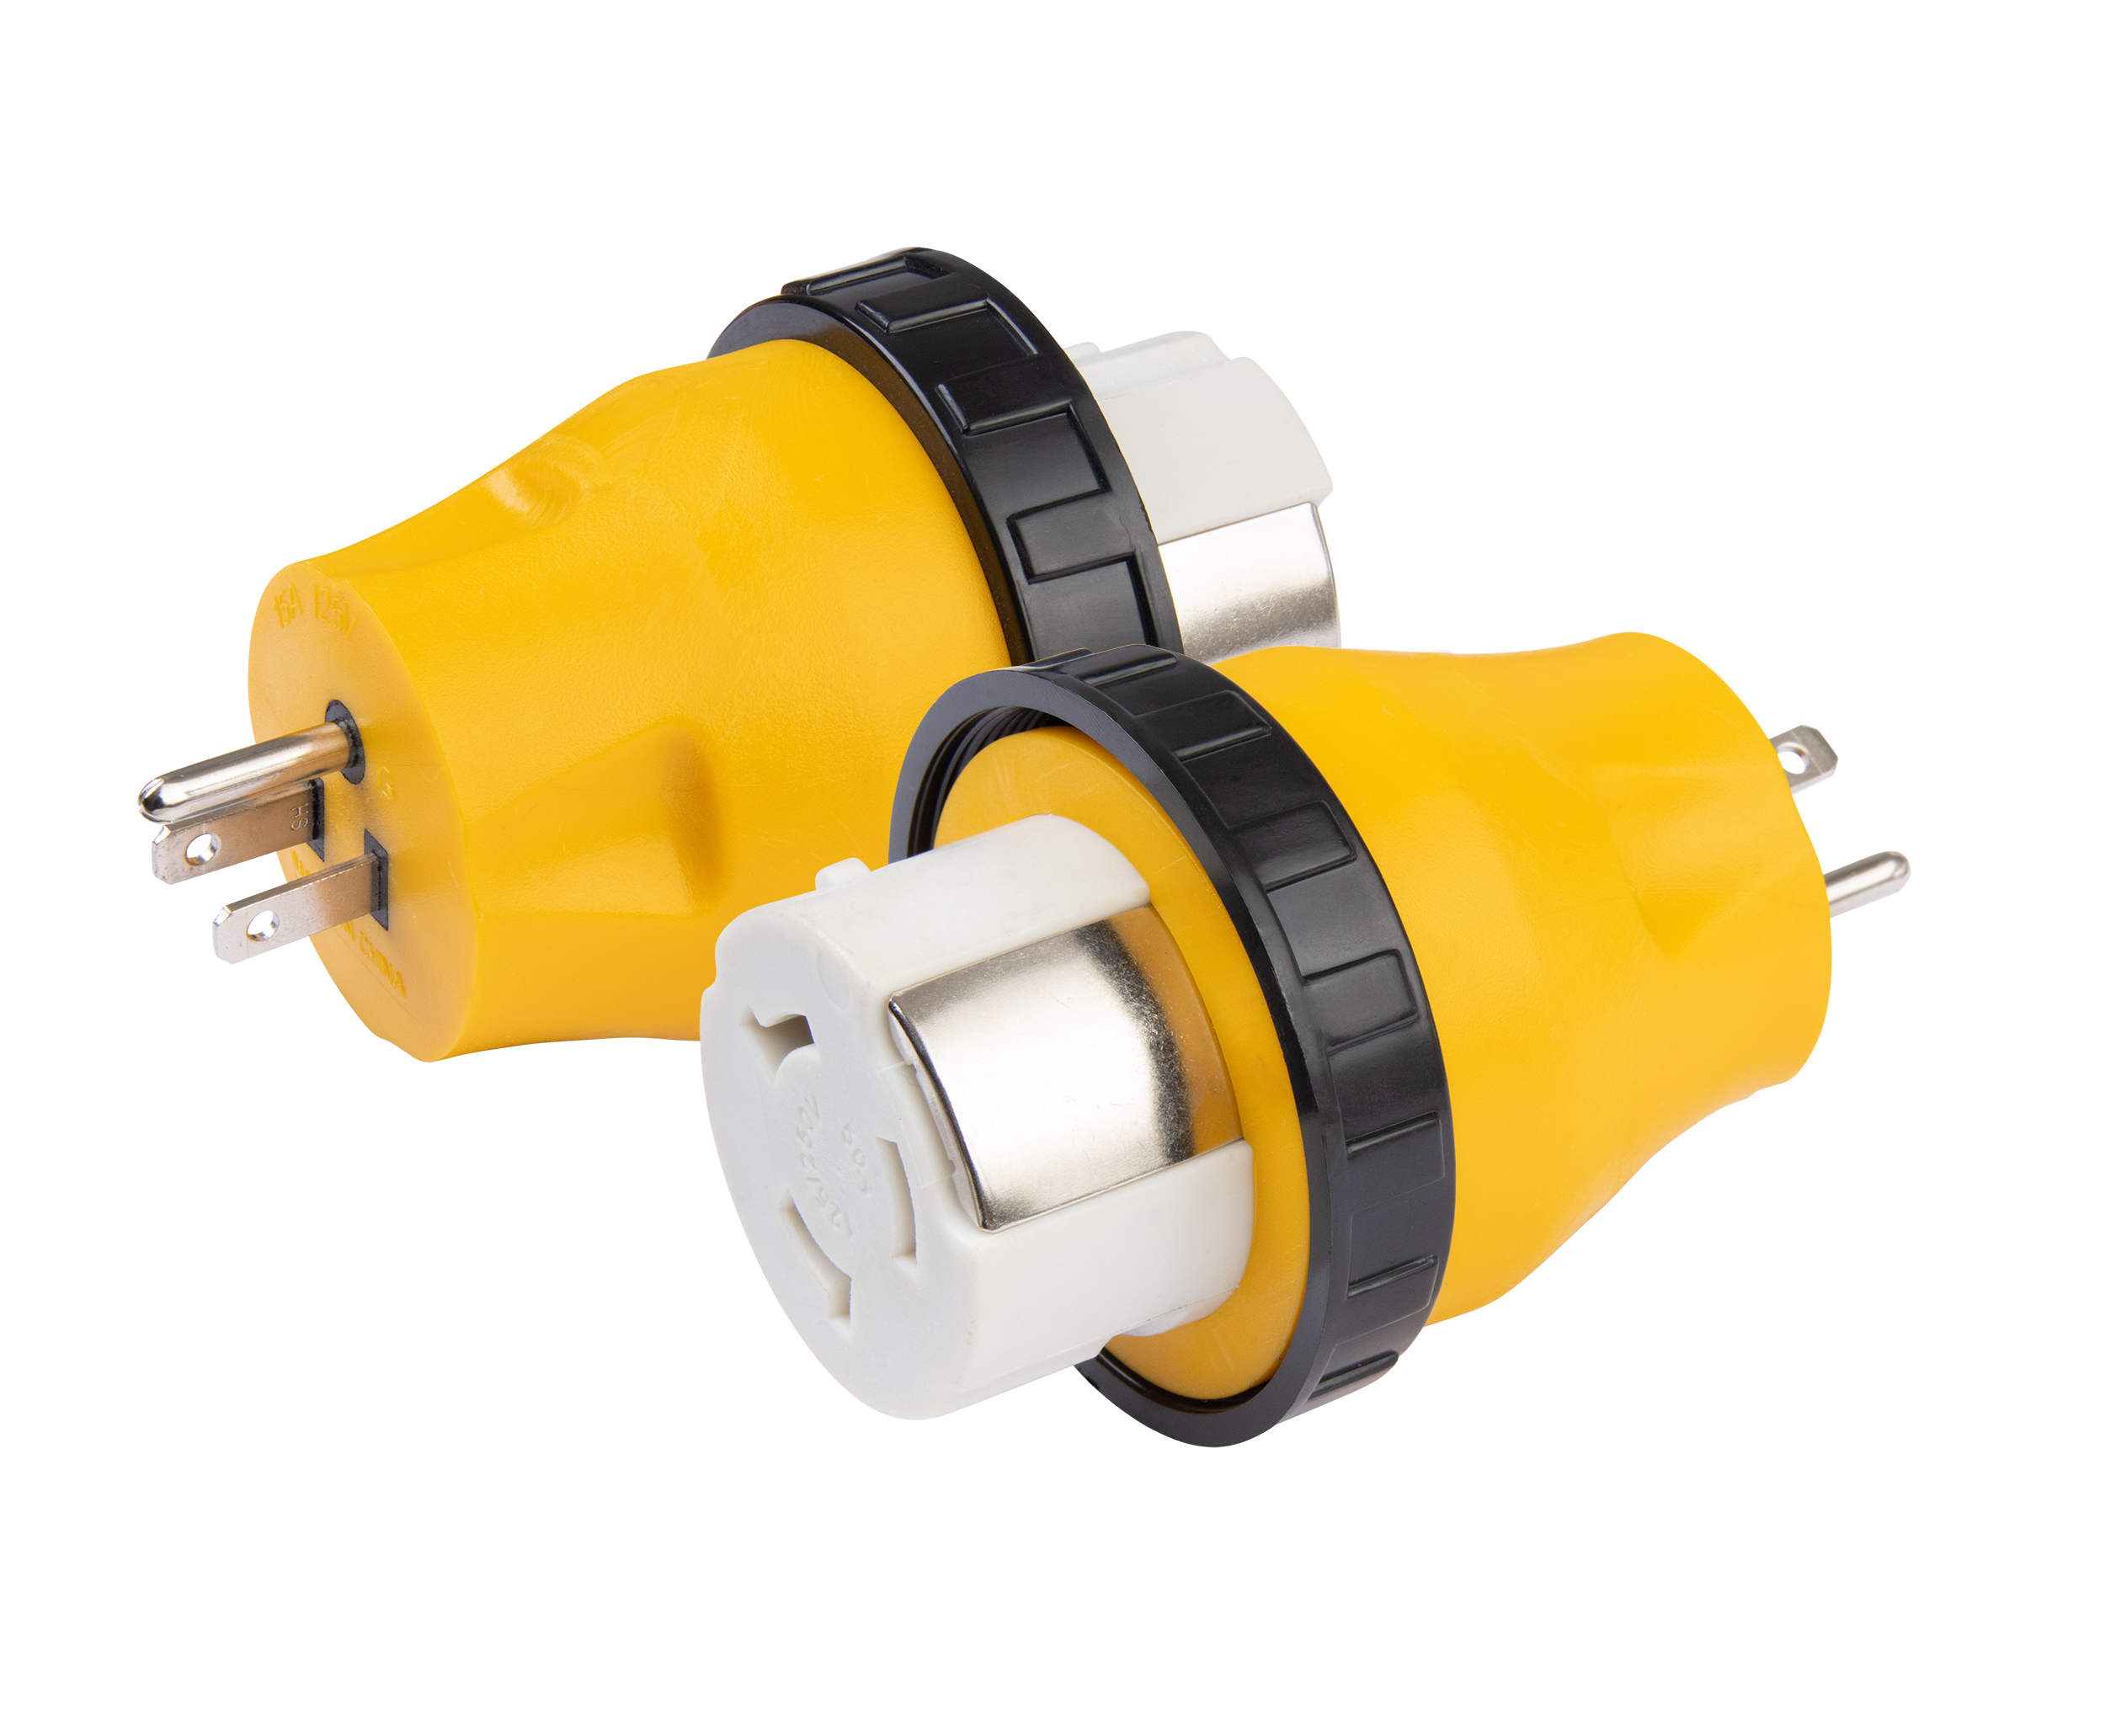 Marinco Pigtail Adapter 50 Amp to 15 Amp